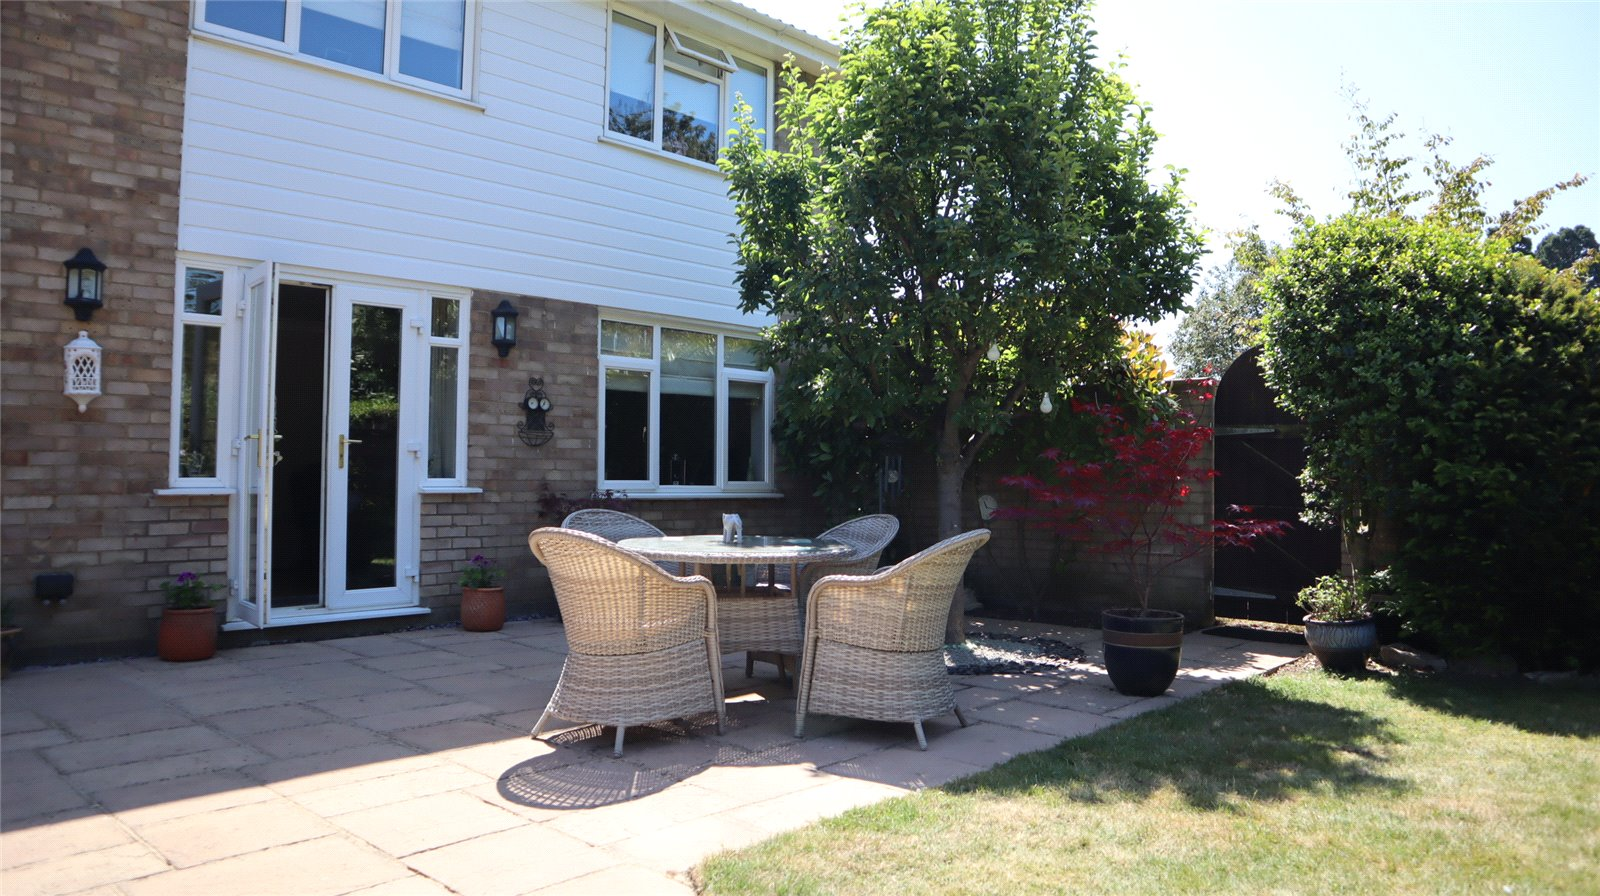 3 bed house for sale in Hathaway Close, Eaton Socon 5